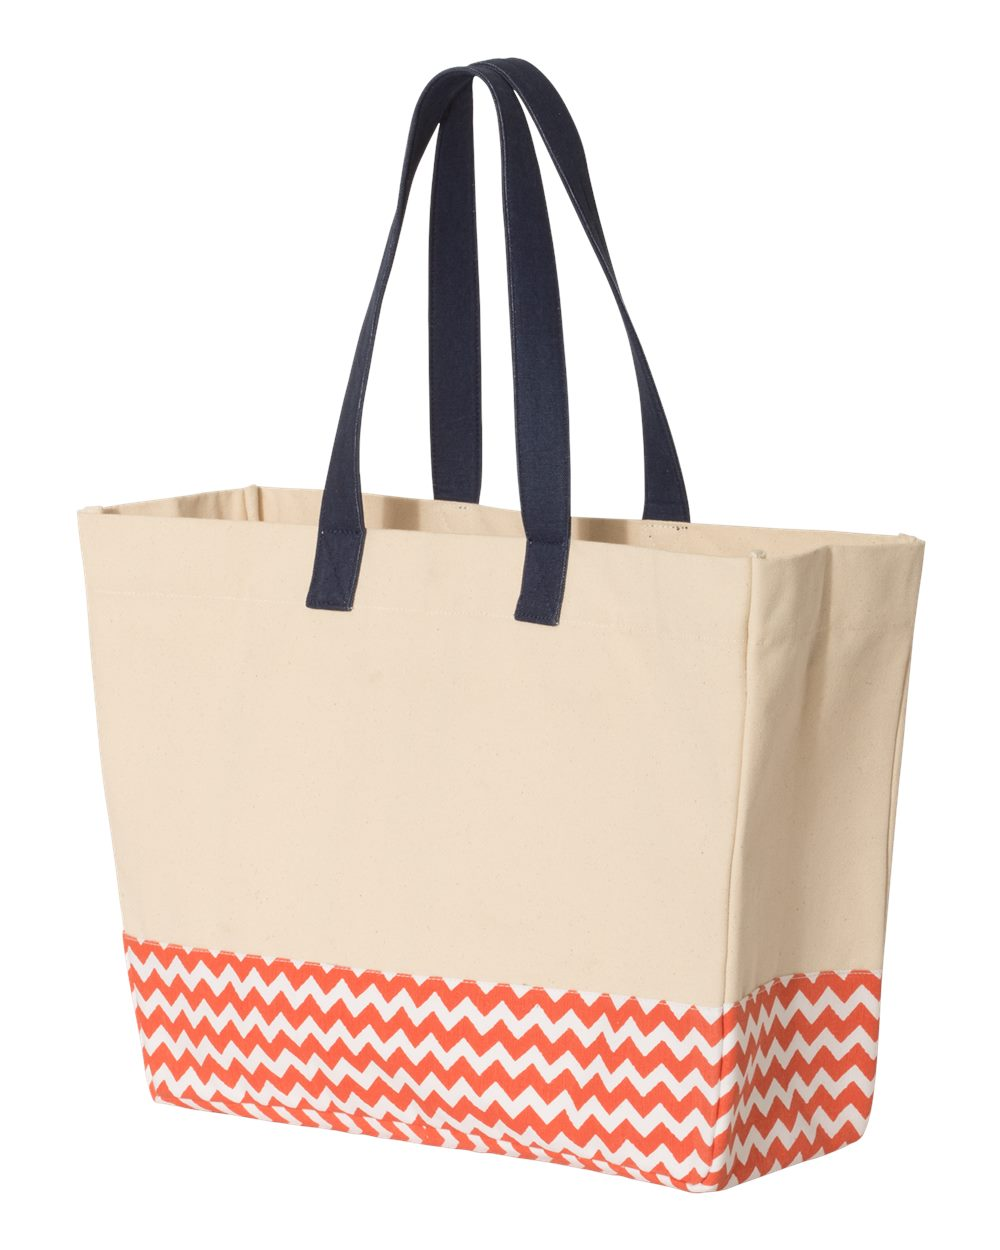 Brookson Bay BB100 - Patterned Bottom Beach Tote